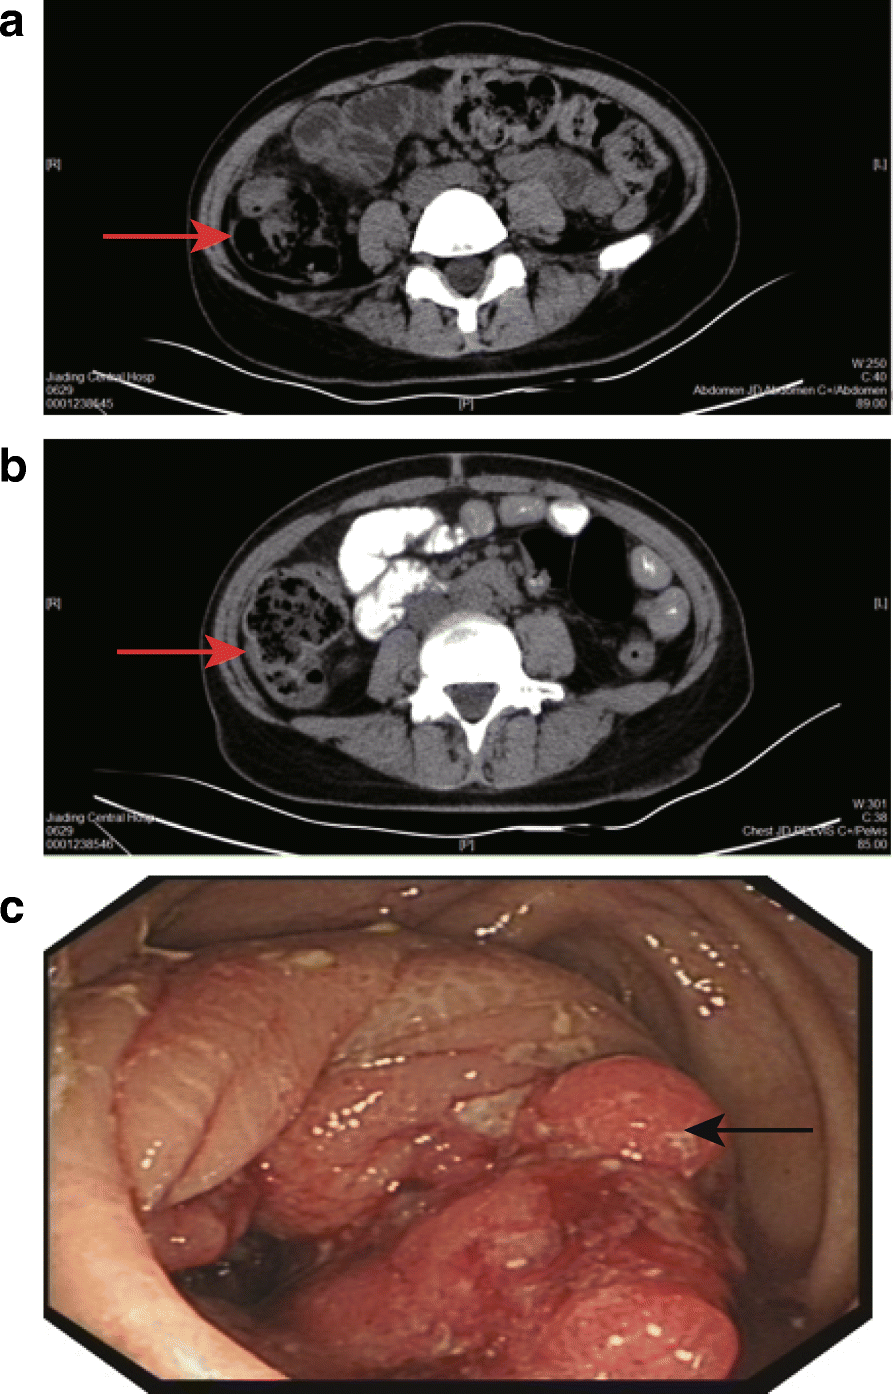 Treatment Of Colon Cancer In A Patient With Systemic Lupus Erythematosus A Case Report Bmc Cancer Full Text